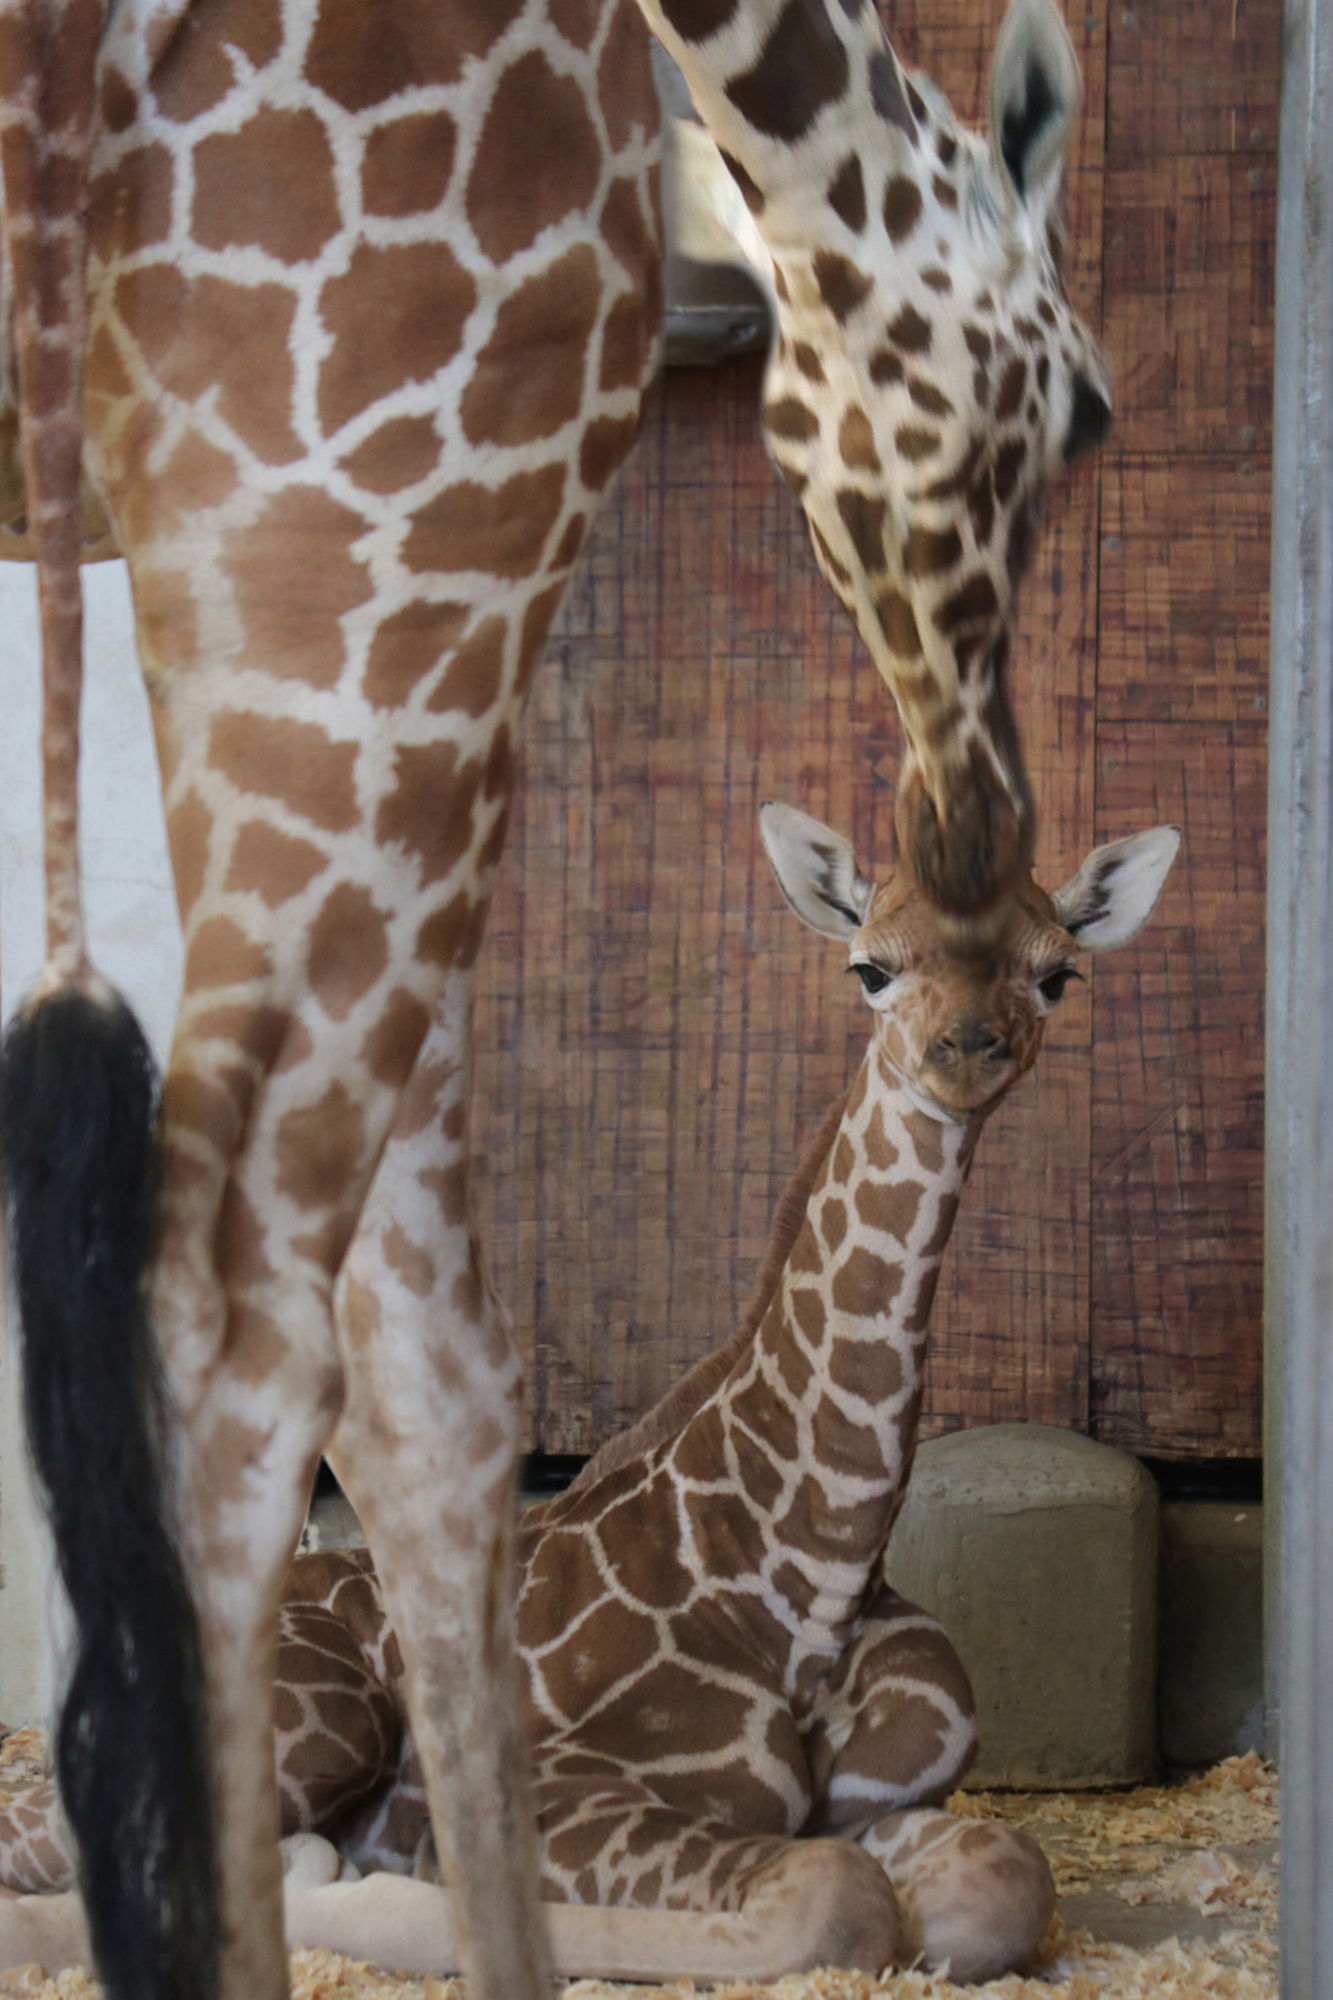 Dallas Zoo Baby Giraffe Up and Walking Just 45 Minutes After Being Born